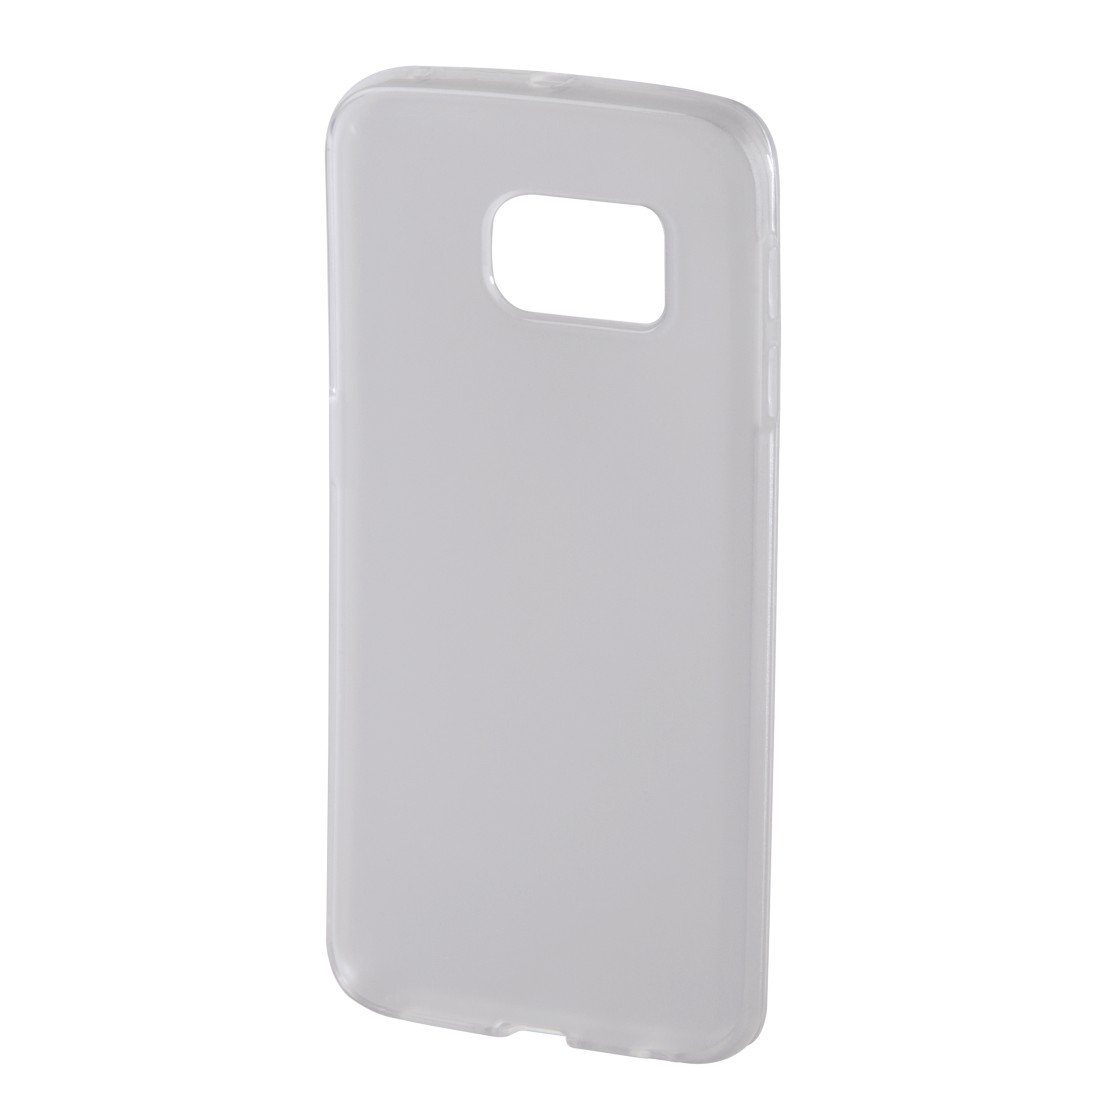 Hama Cover Crystal für Samsung Galaxy S6 Edge, Transparent